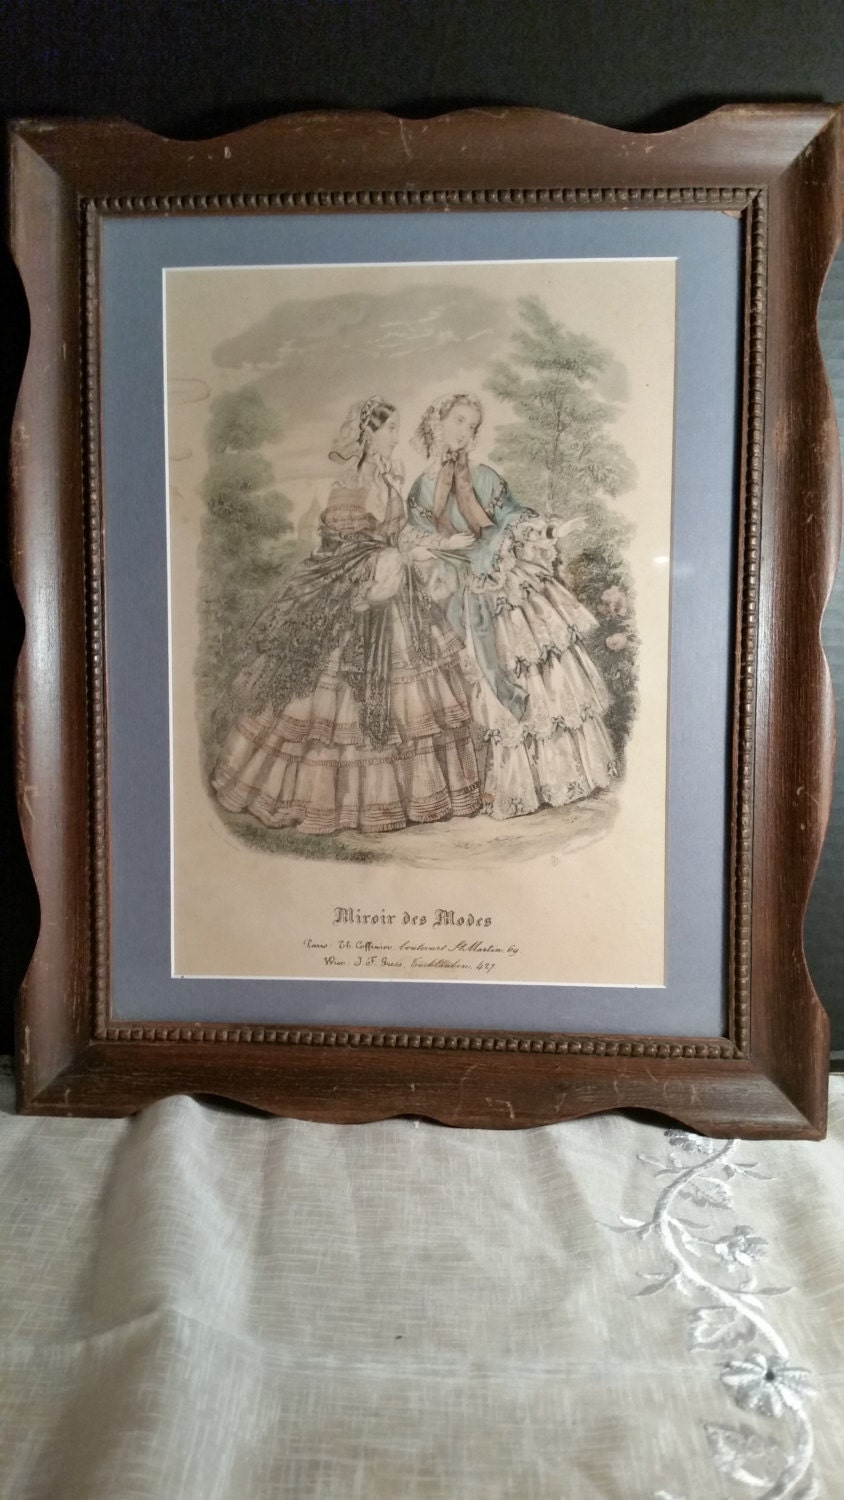 Miroir des modes victorian print vintage french ladies print for Miroir des modes value